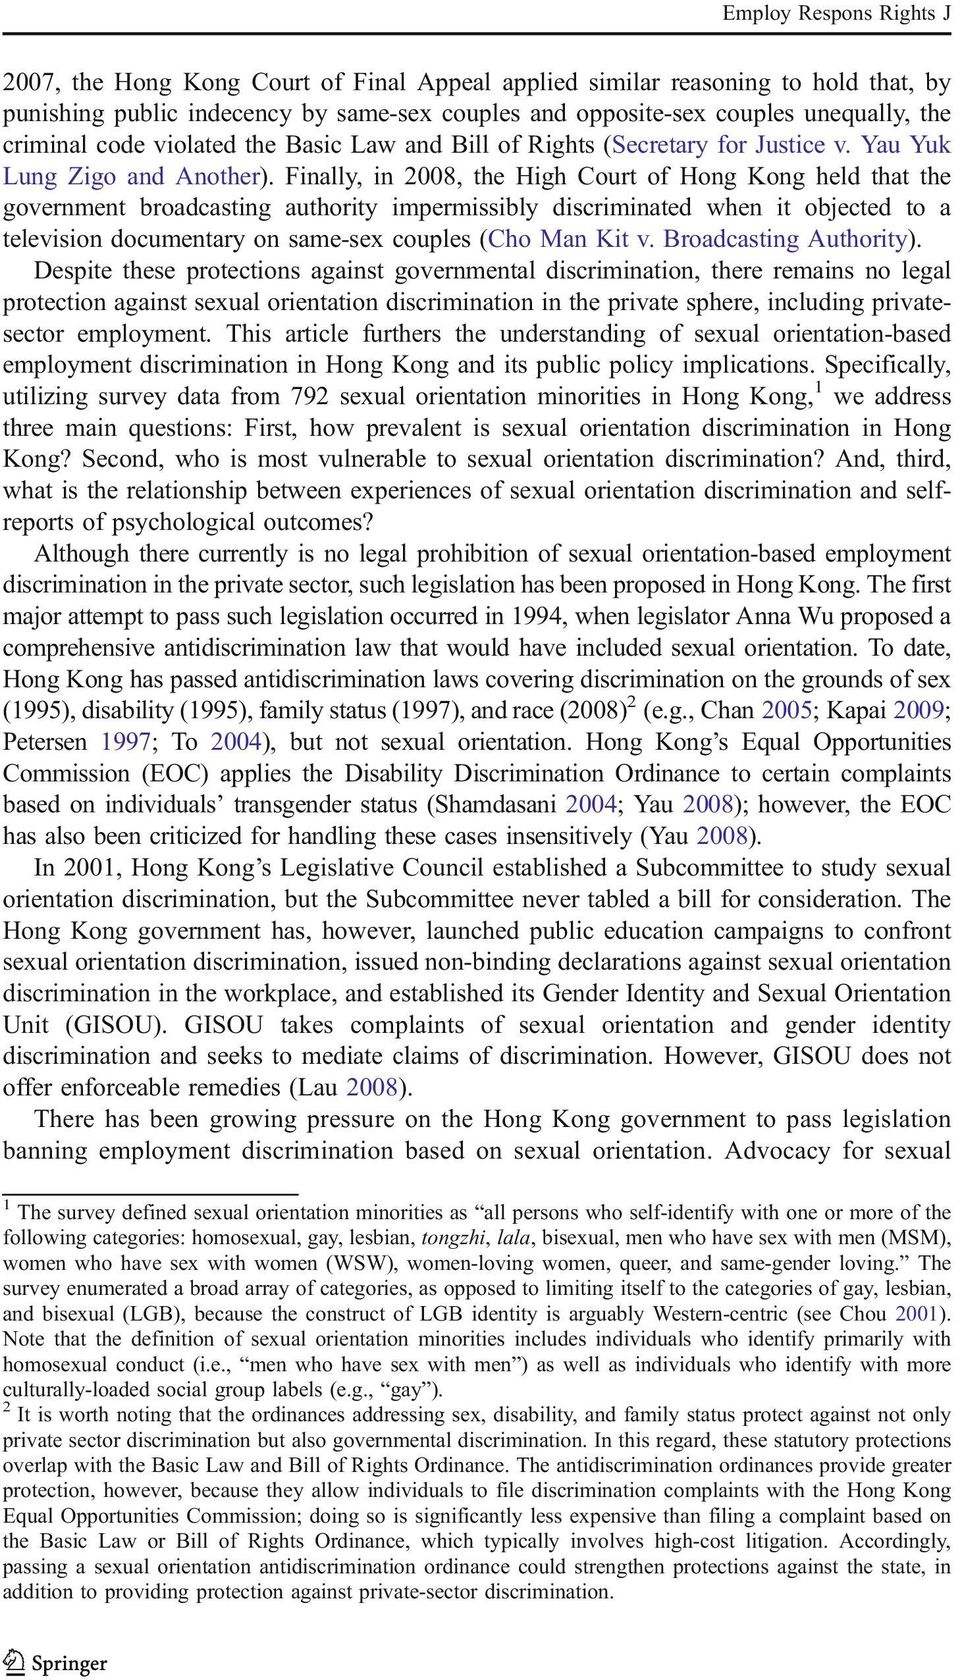 Finally, in 2008, the High Court of Hong Kong held that the government broadcasting authority impermissibly discriminated when it objected to a television documentary on same-sex couples (Cho Man Kit